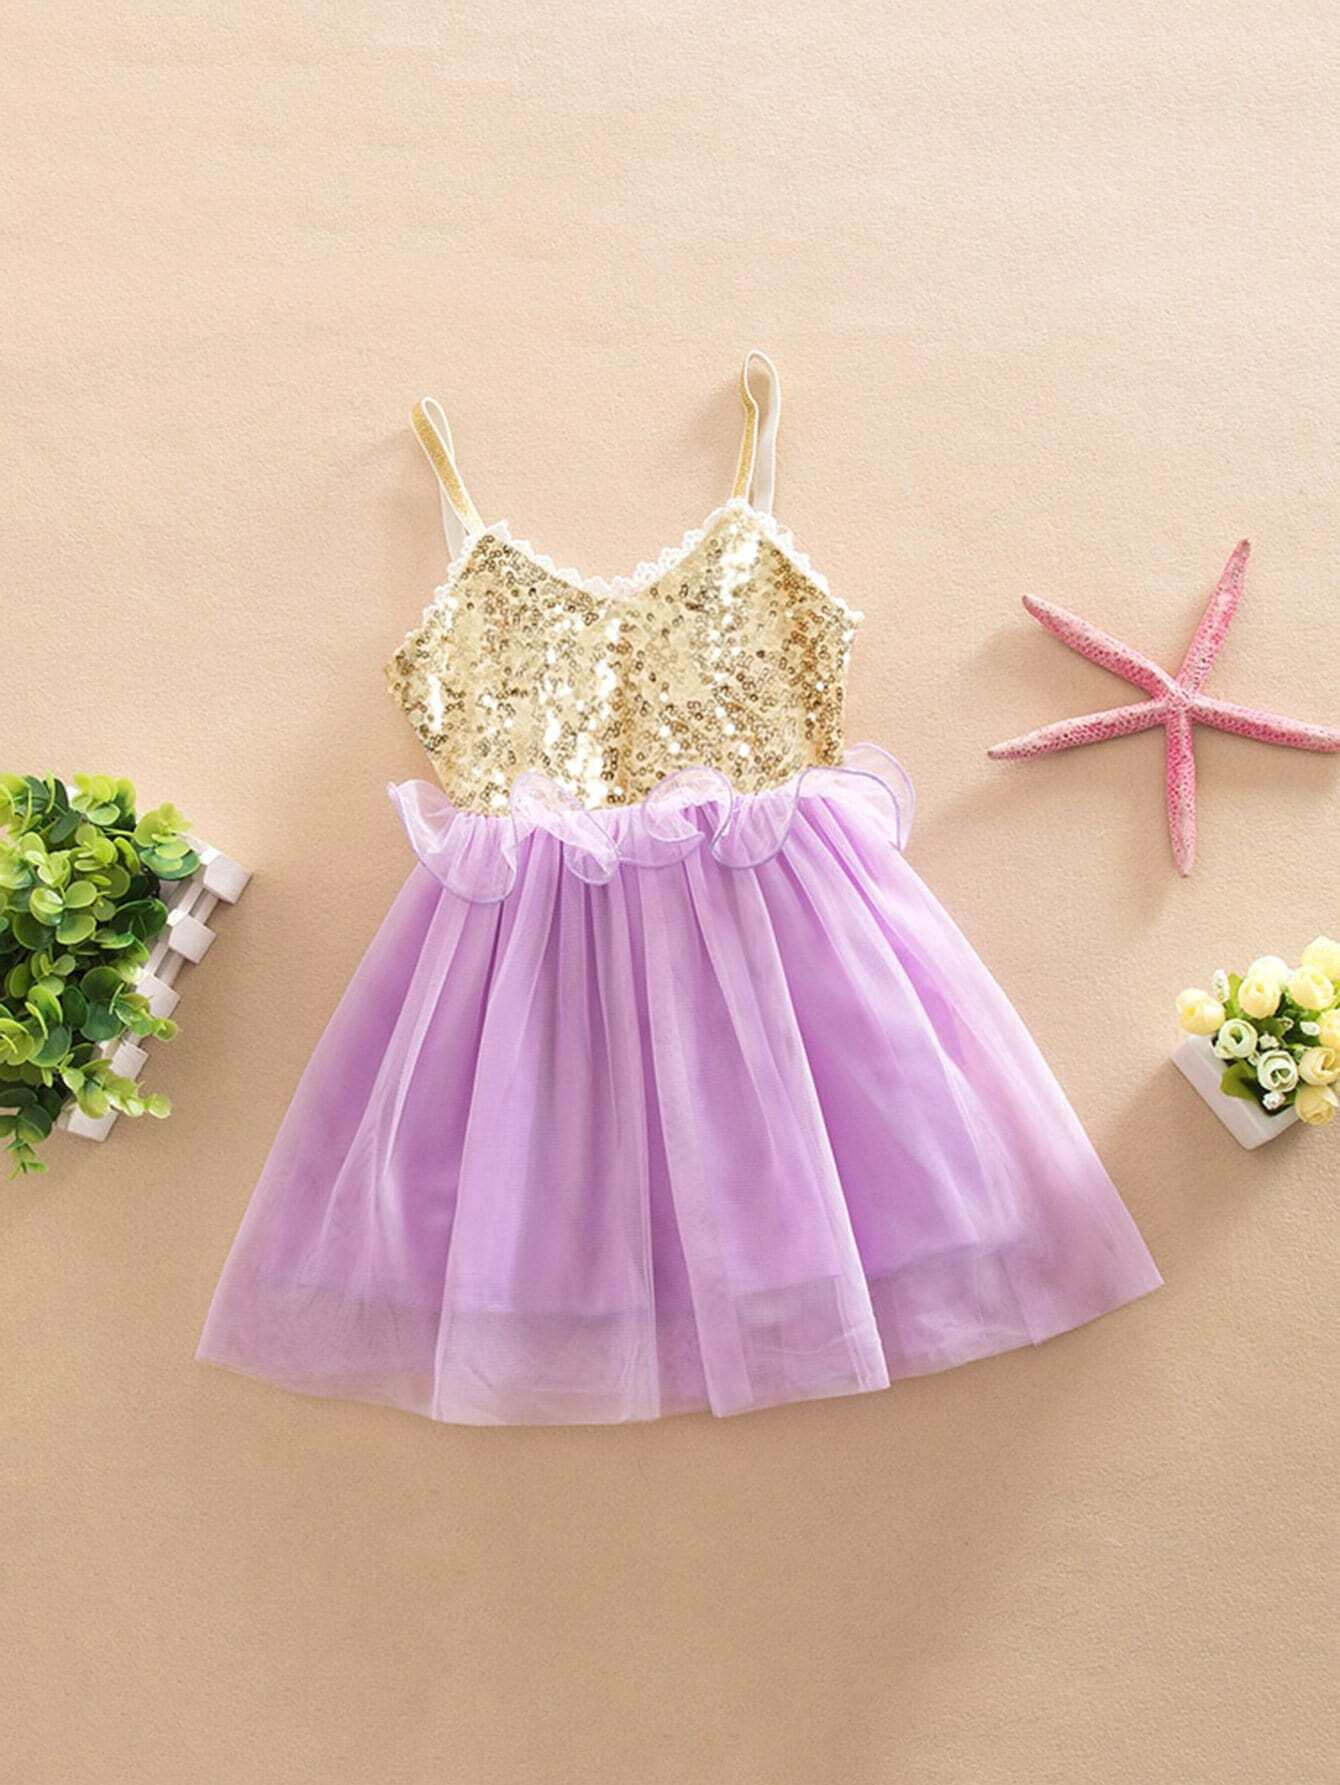 Girls Contrast Sequin Mesh Cami Dress pui hing 350mg 30 3